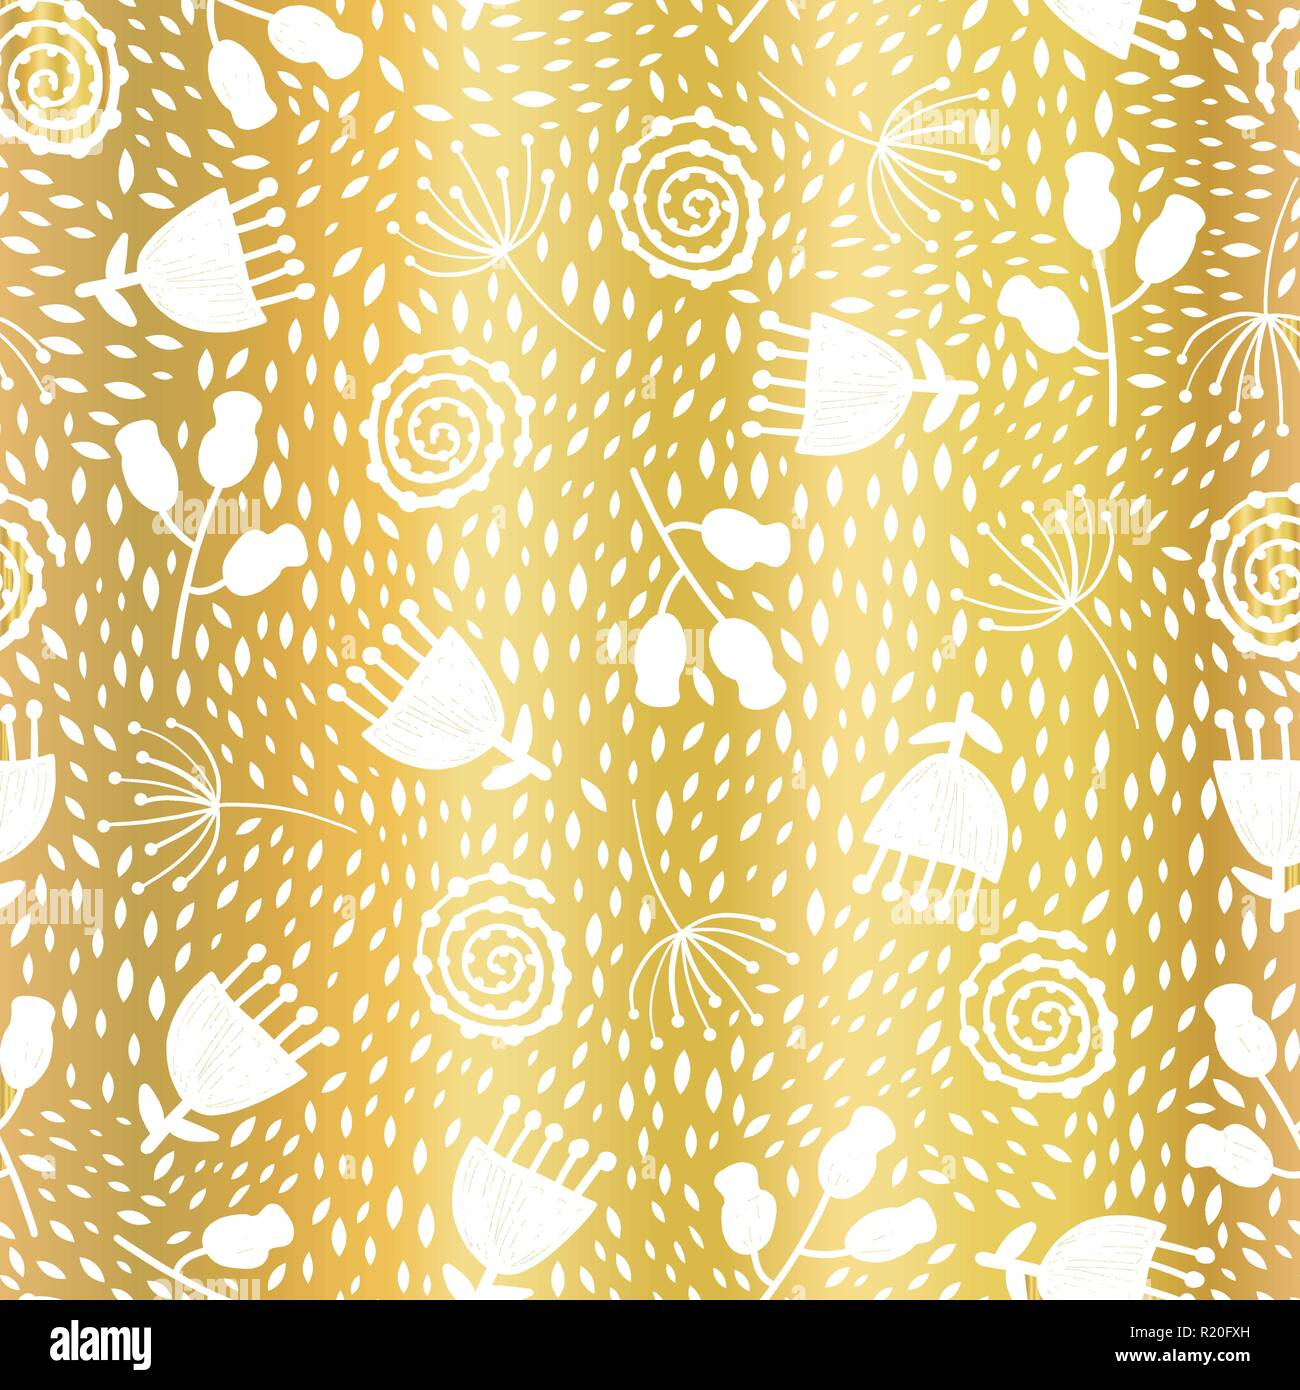 Golden Tulip Flower Vector Seamless Pattern Background Elegant